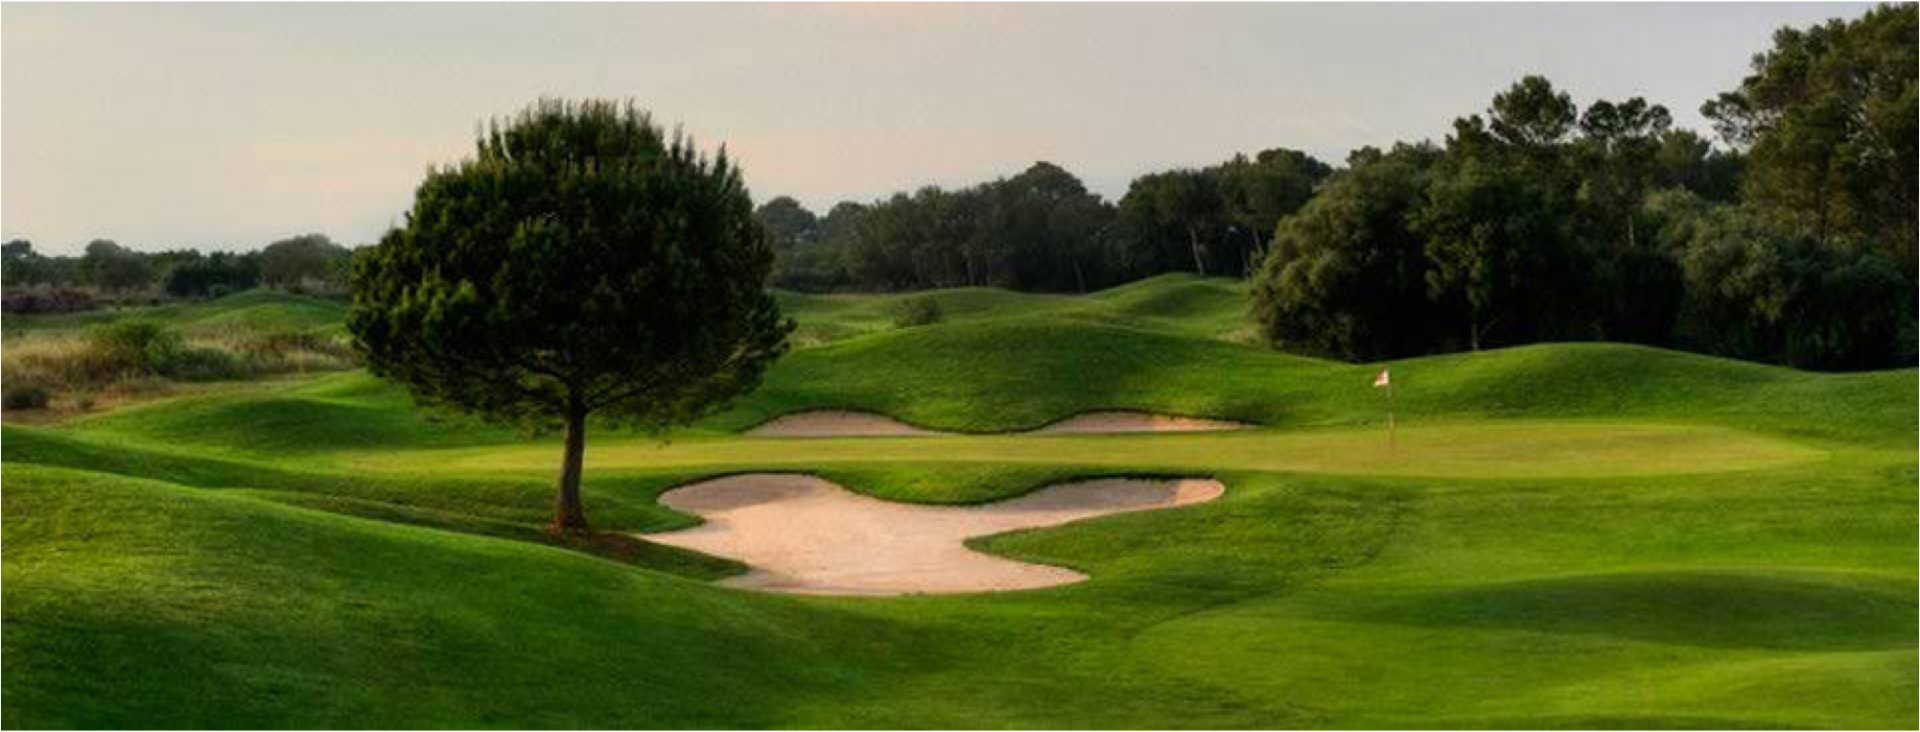 Son Antem Golf Club, Llucmajor, golf, golfbana,